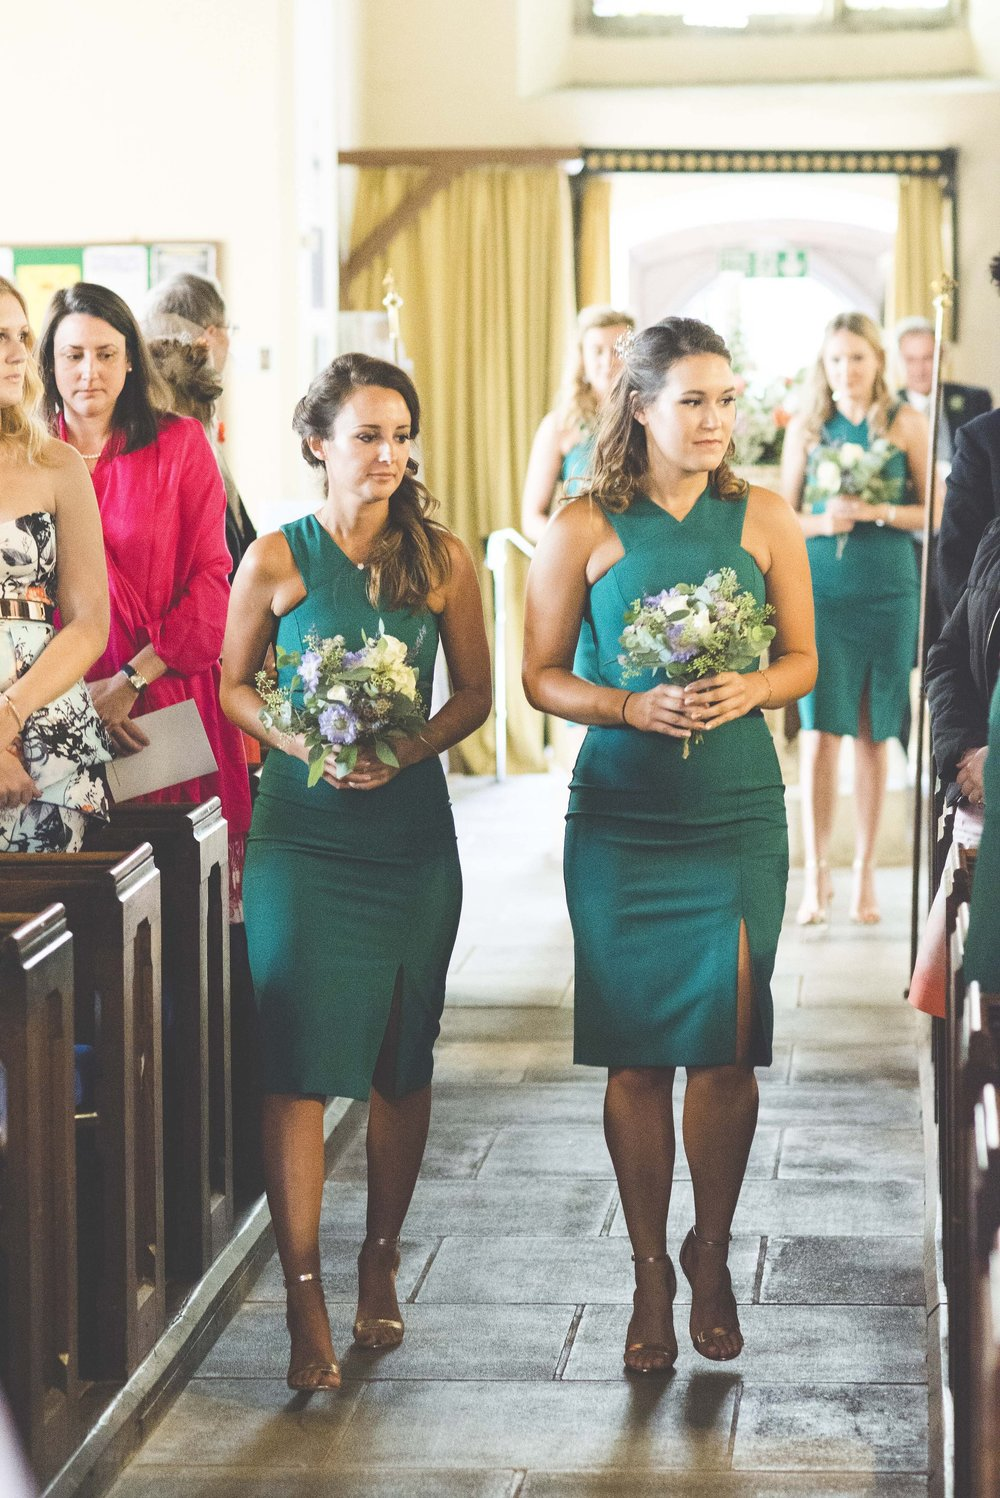 Flowers by Jennifer Pinder green turquoise bridesmaids Kent London wedding florist.jpg